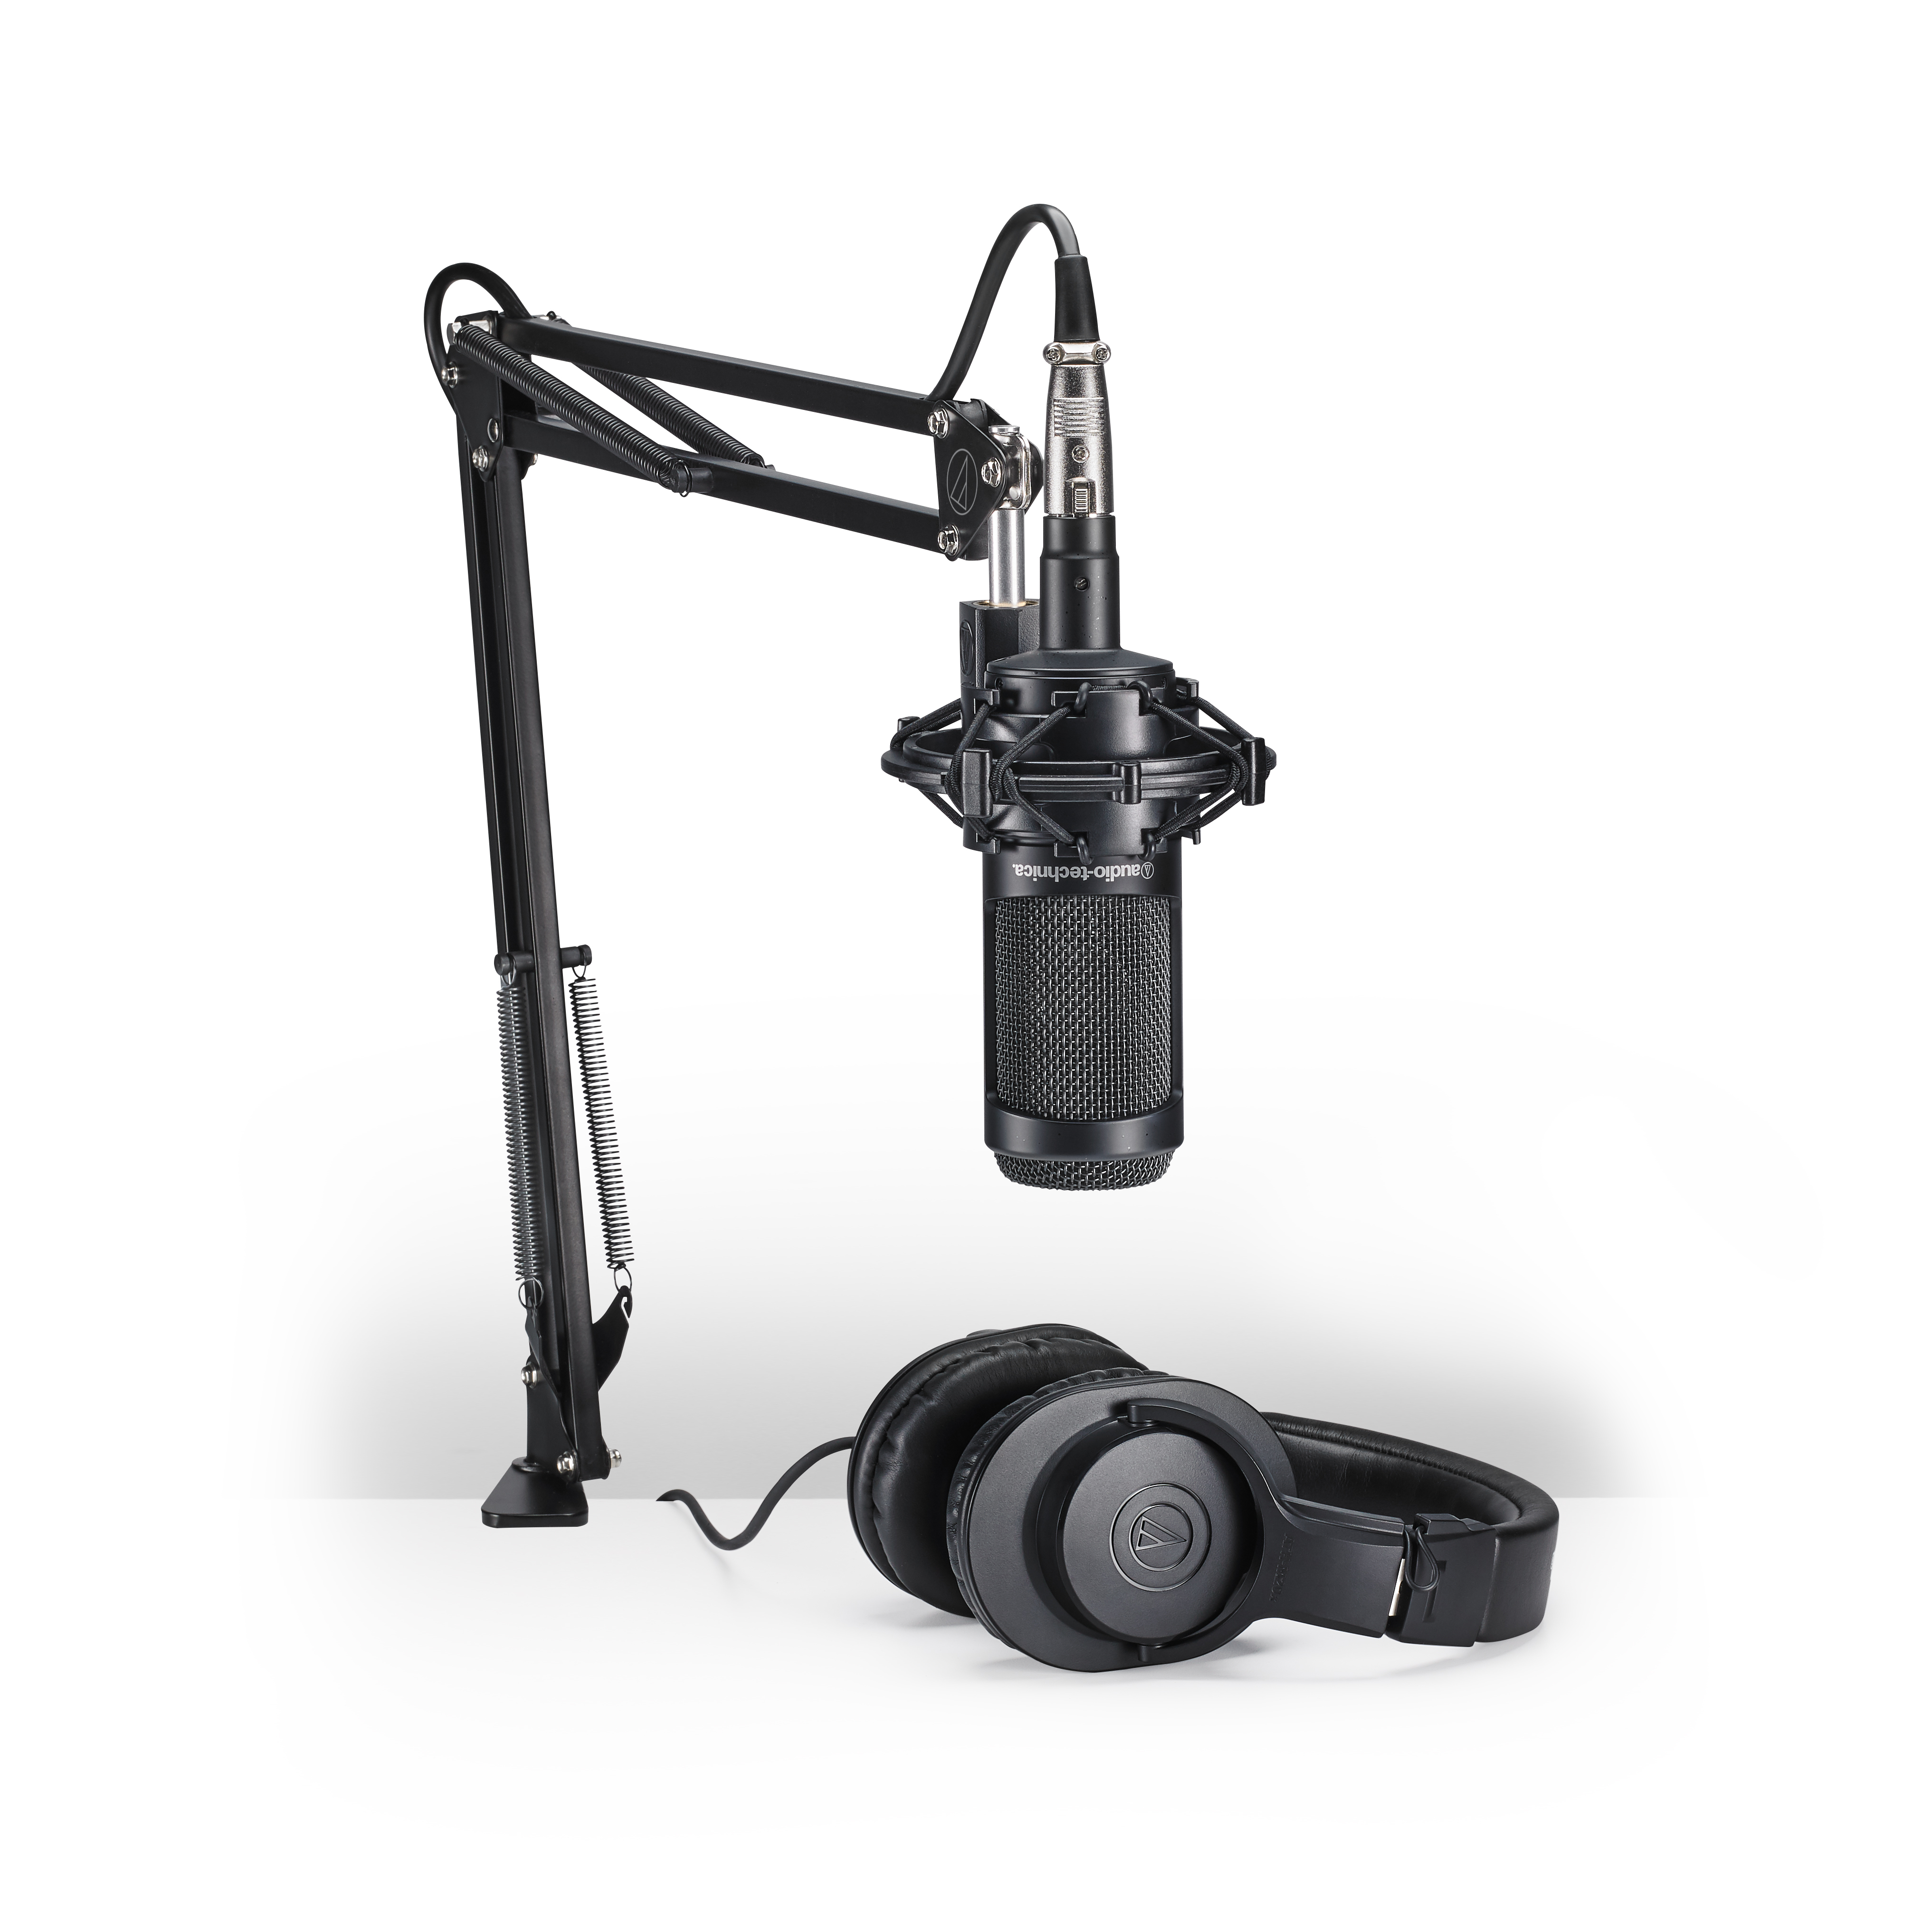 Kit Streaming e Podcast AT-2035-PK - AUDIO TECHNICA